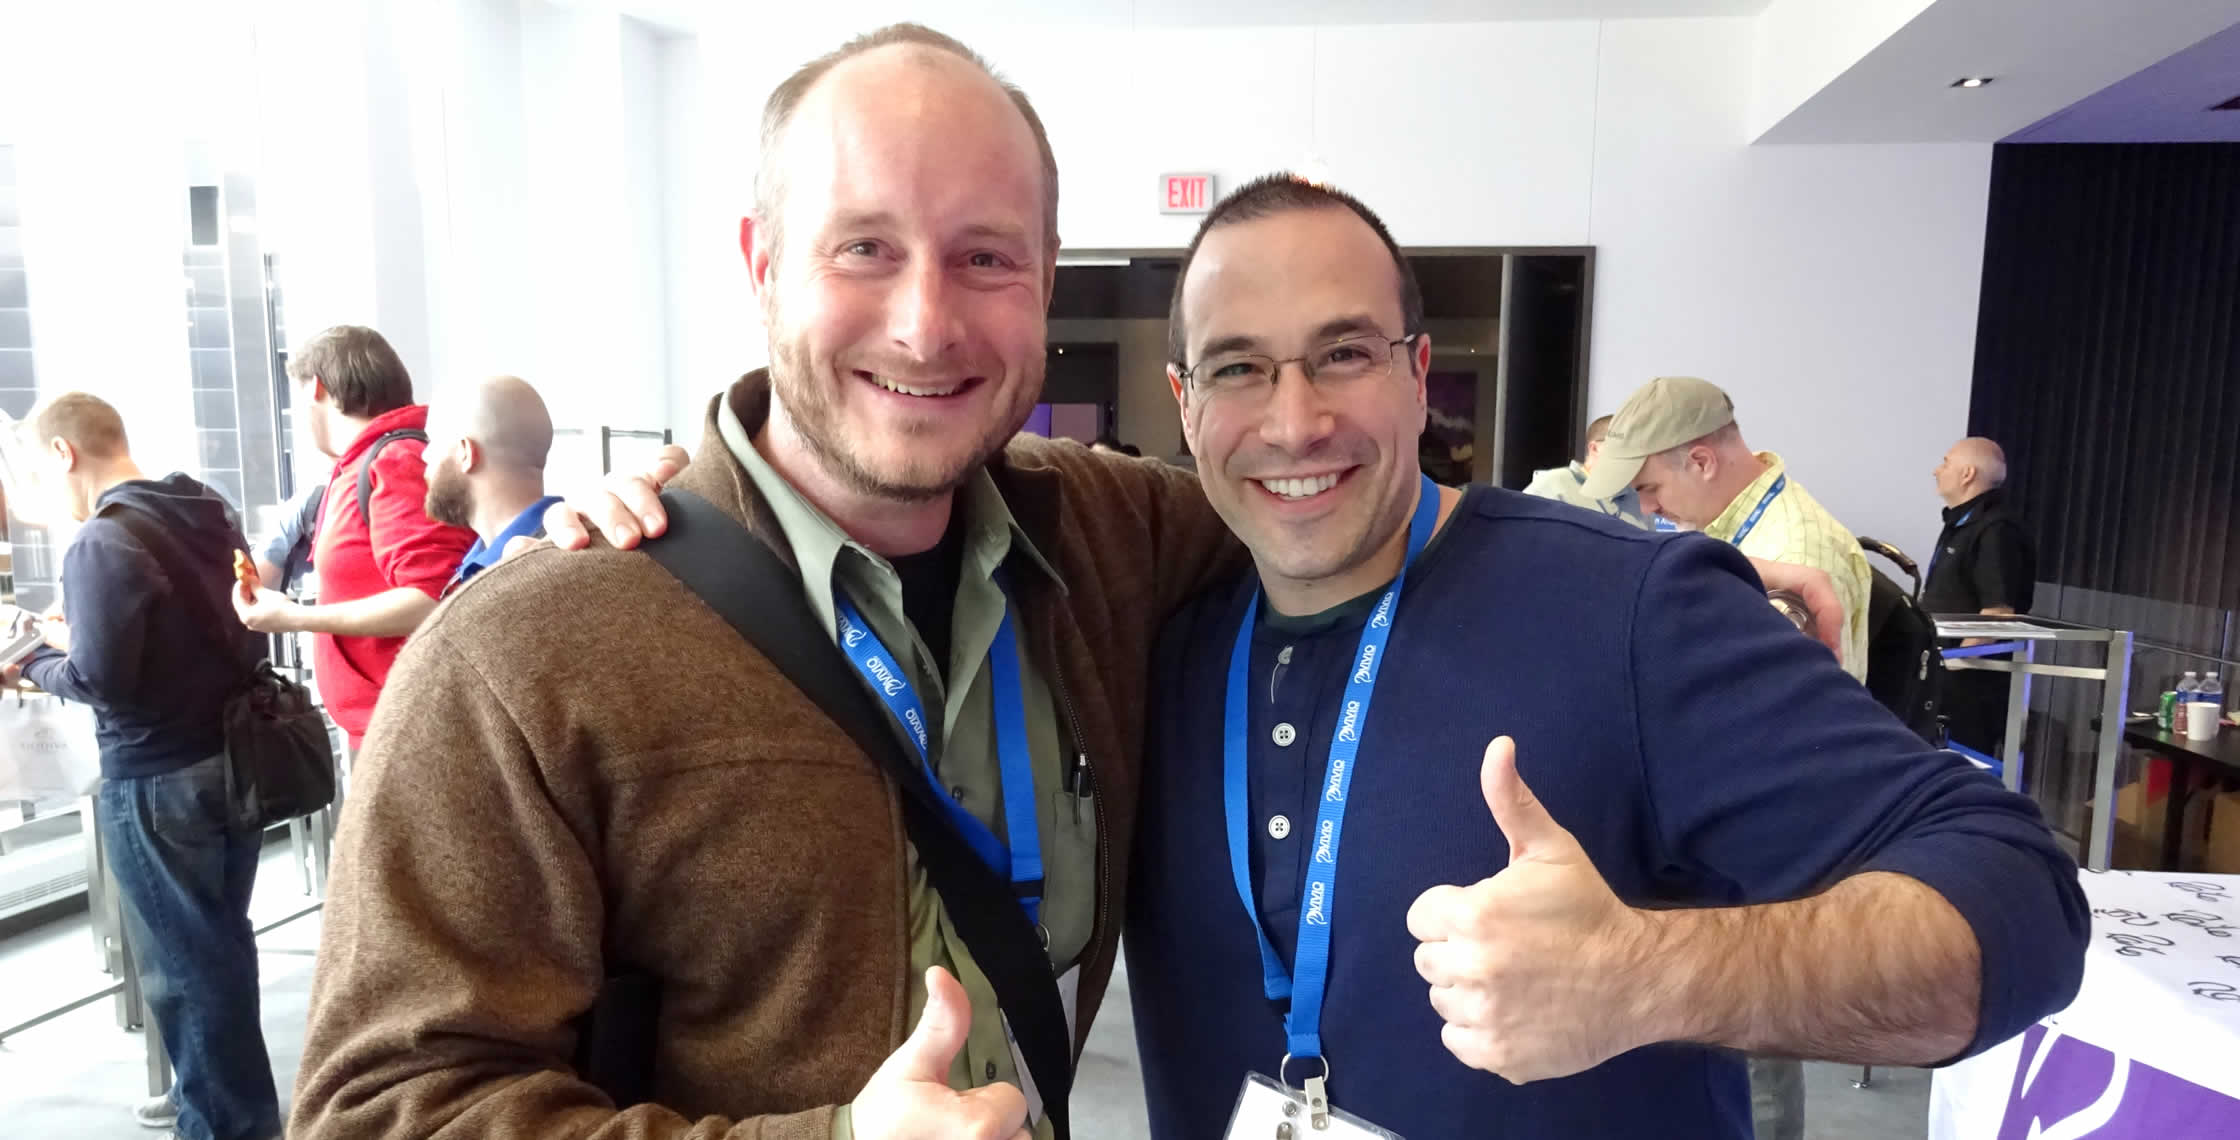 Ben Nadel at cf.Objective() 2014 (Bloomington, MN) with: Alec Irwin